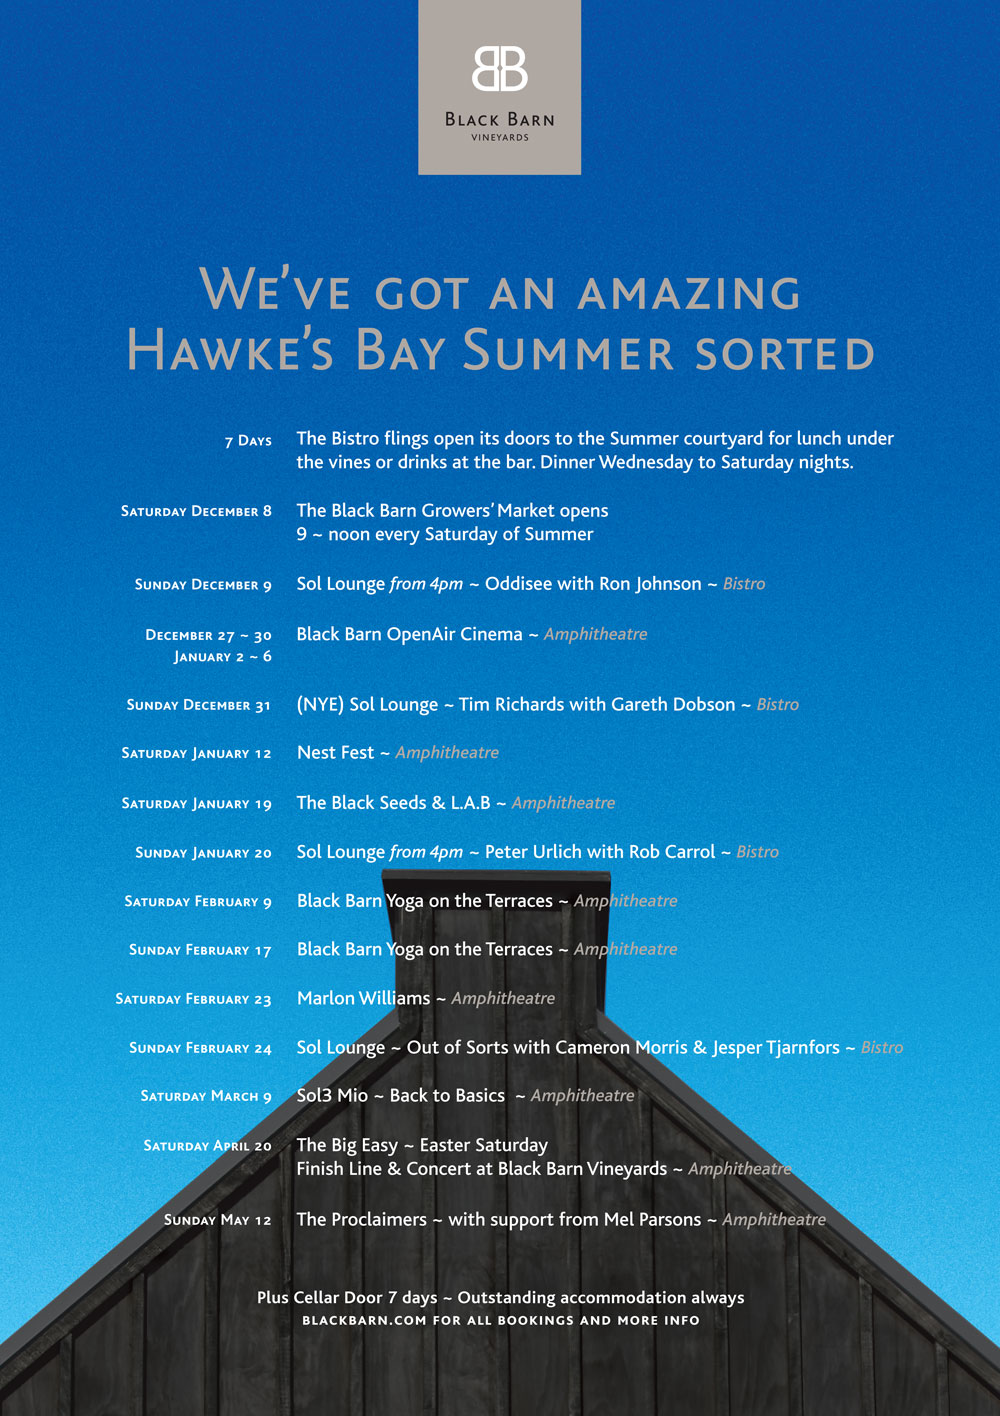 We've got an Amazing Summer Sorted.